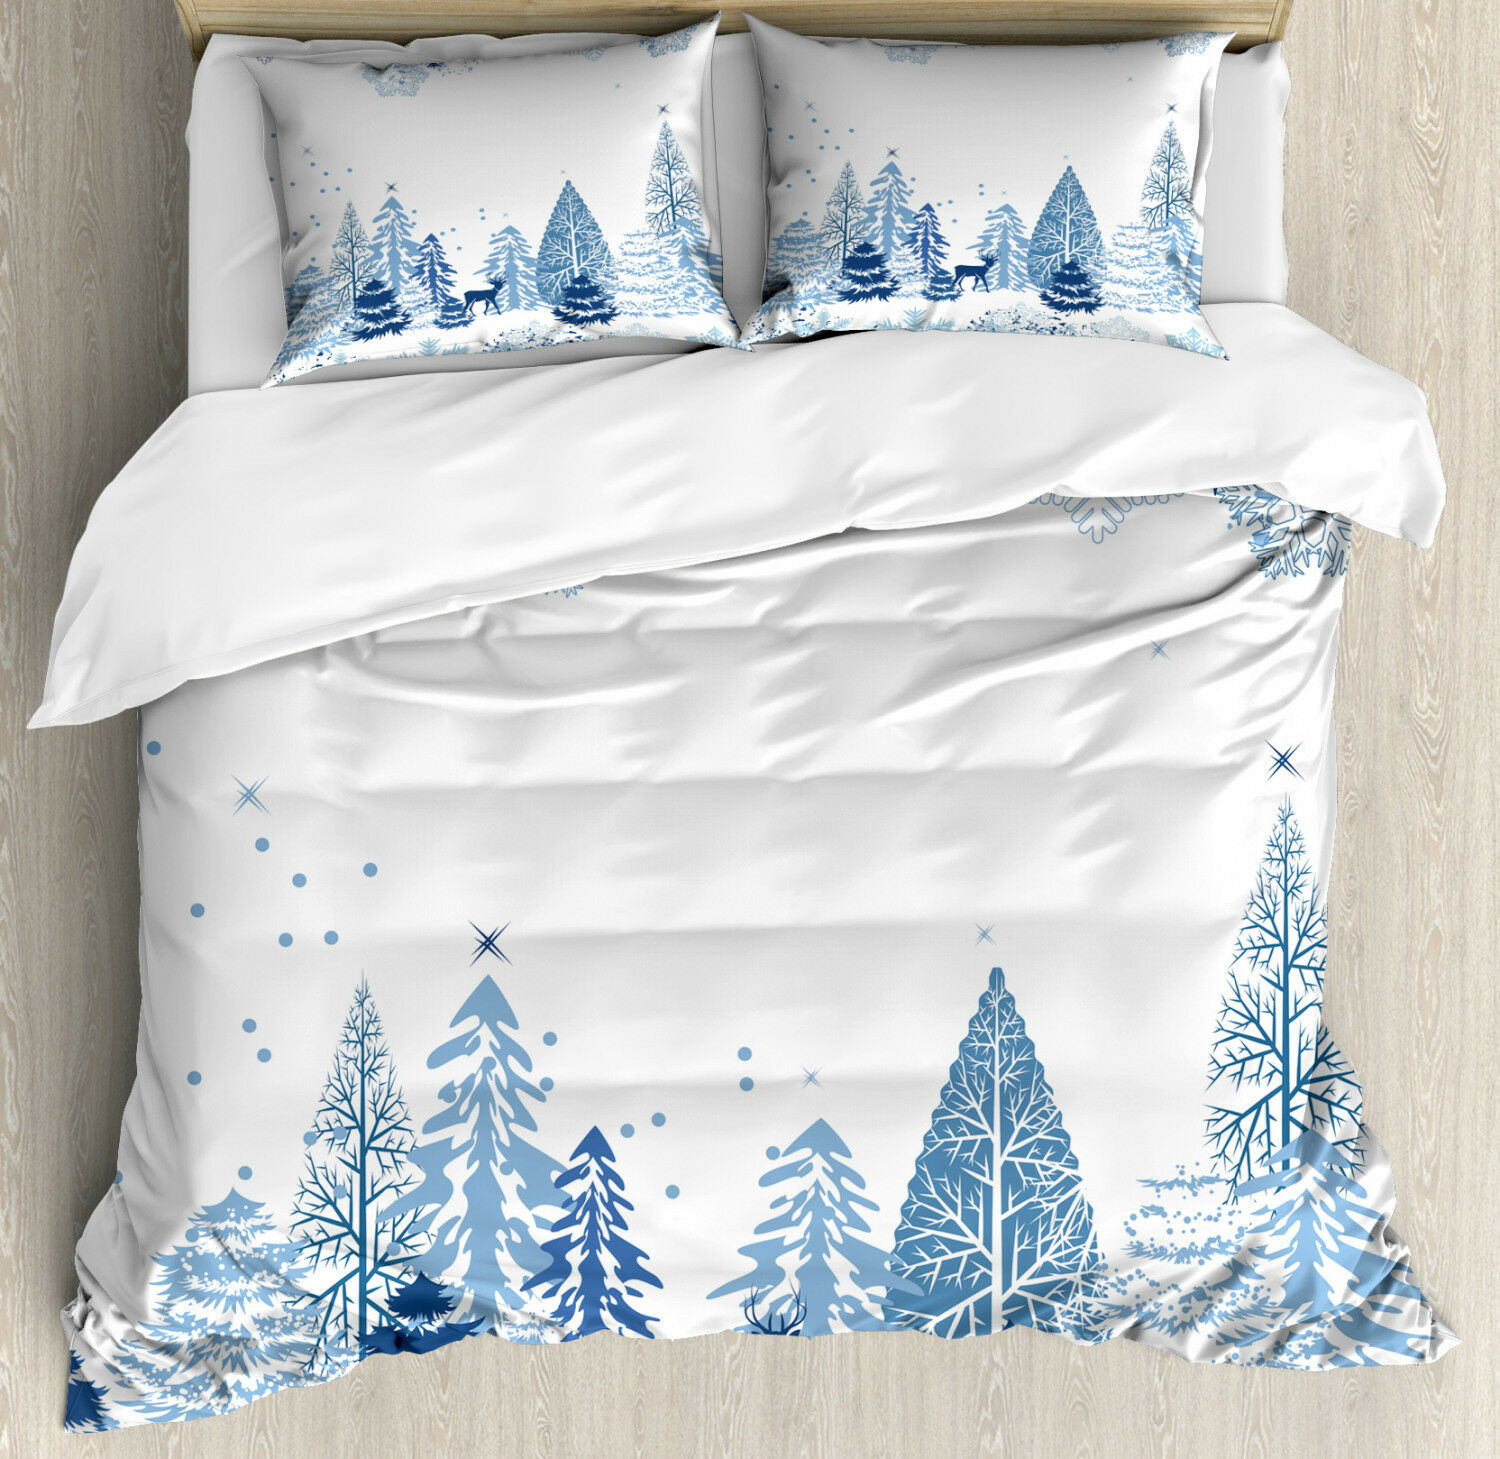 Winter Duvet Cover Set with Pillow Shams Deer Pine Trees Xmas Print